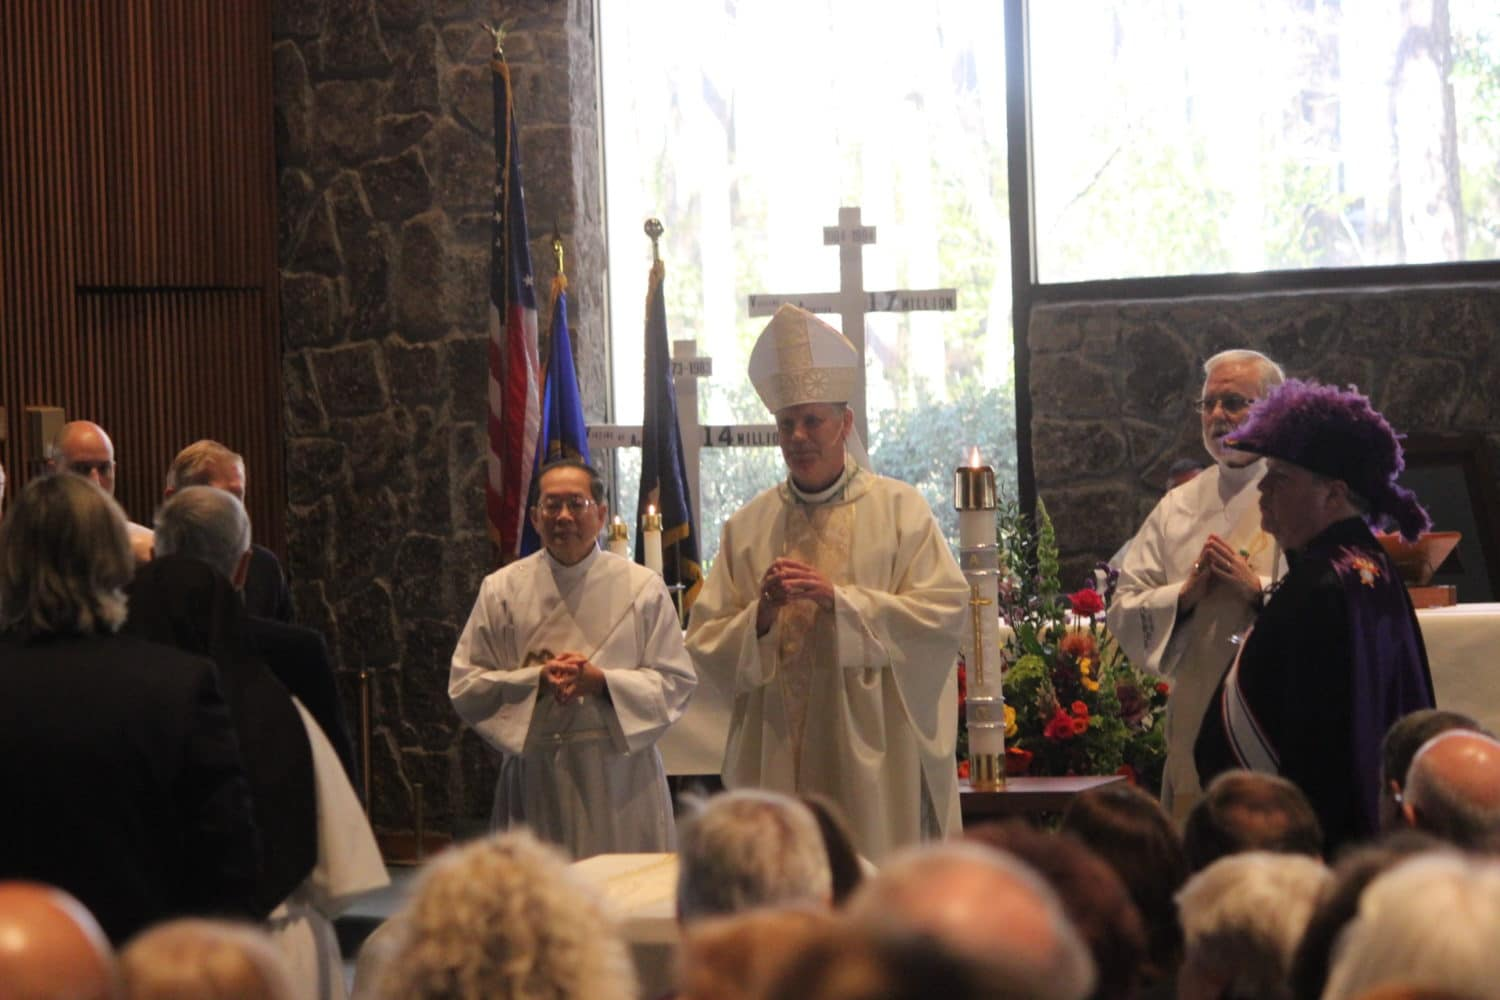 Photos: Hundreds attend Dunwoody funeral Mass for Msgr